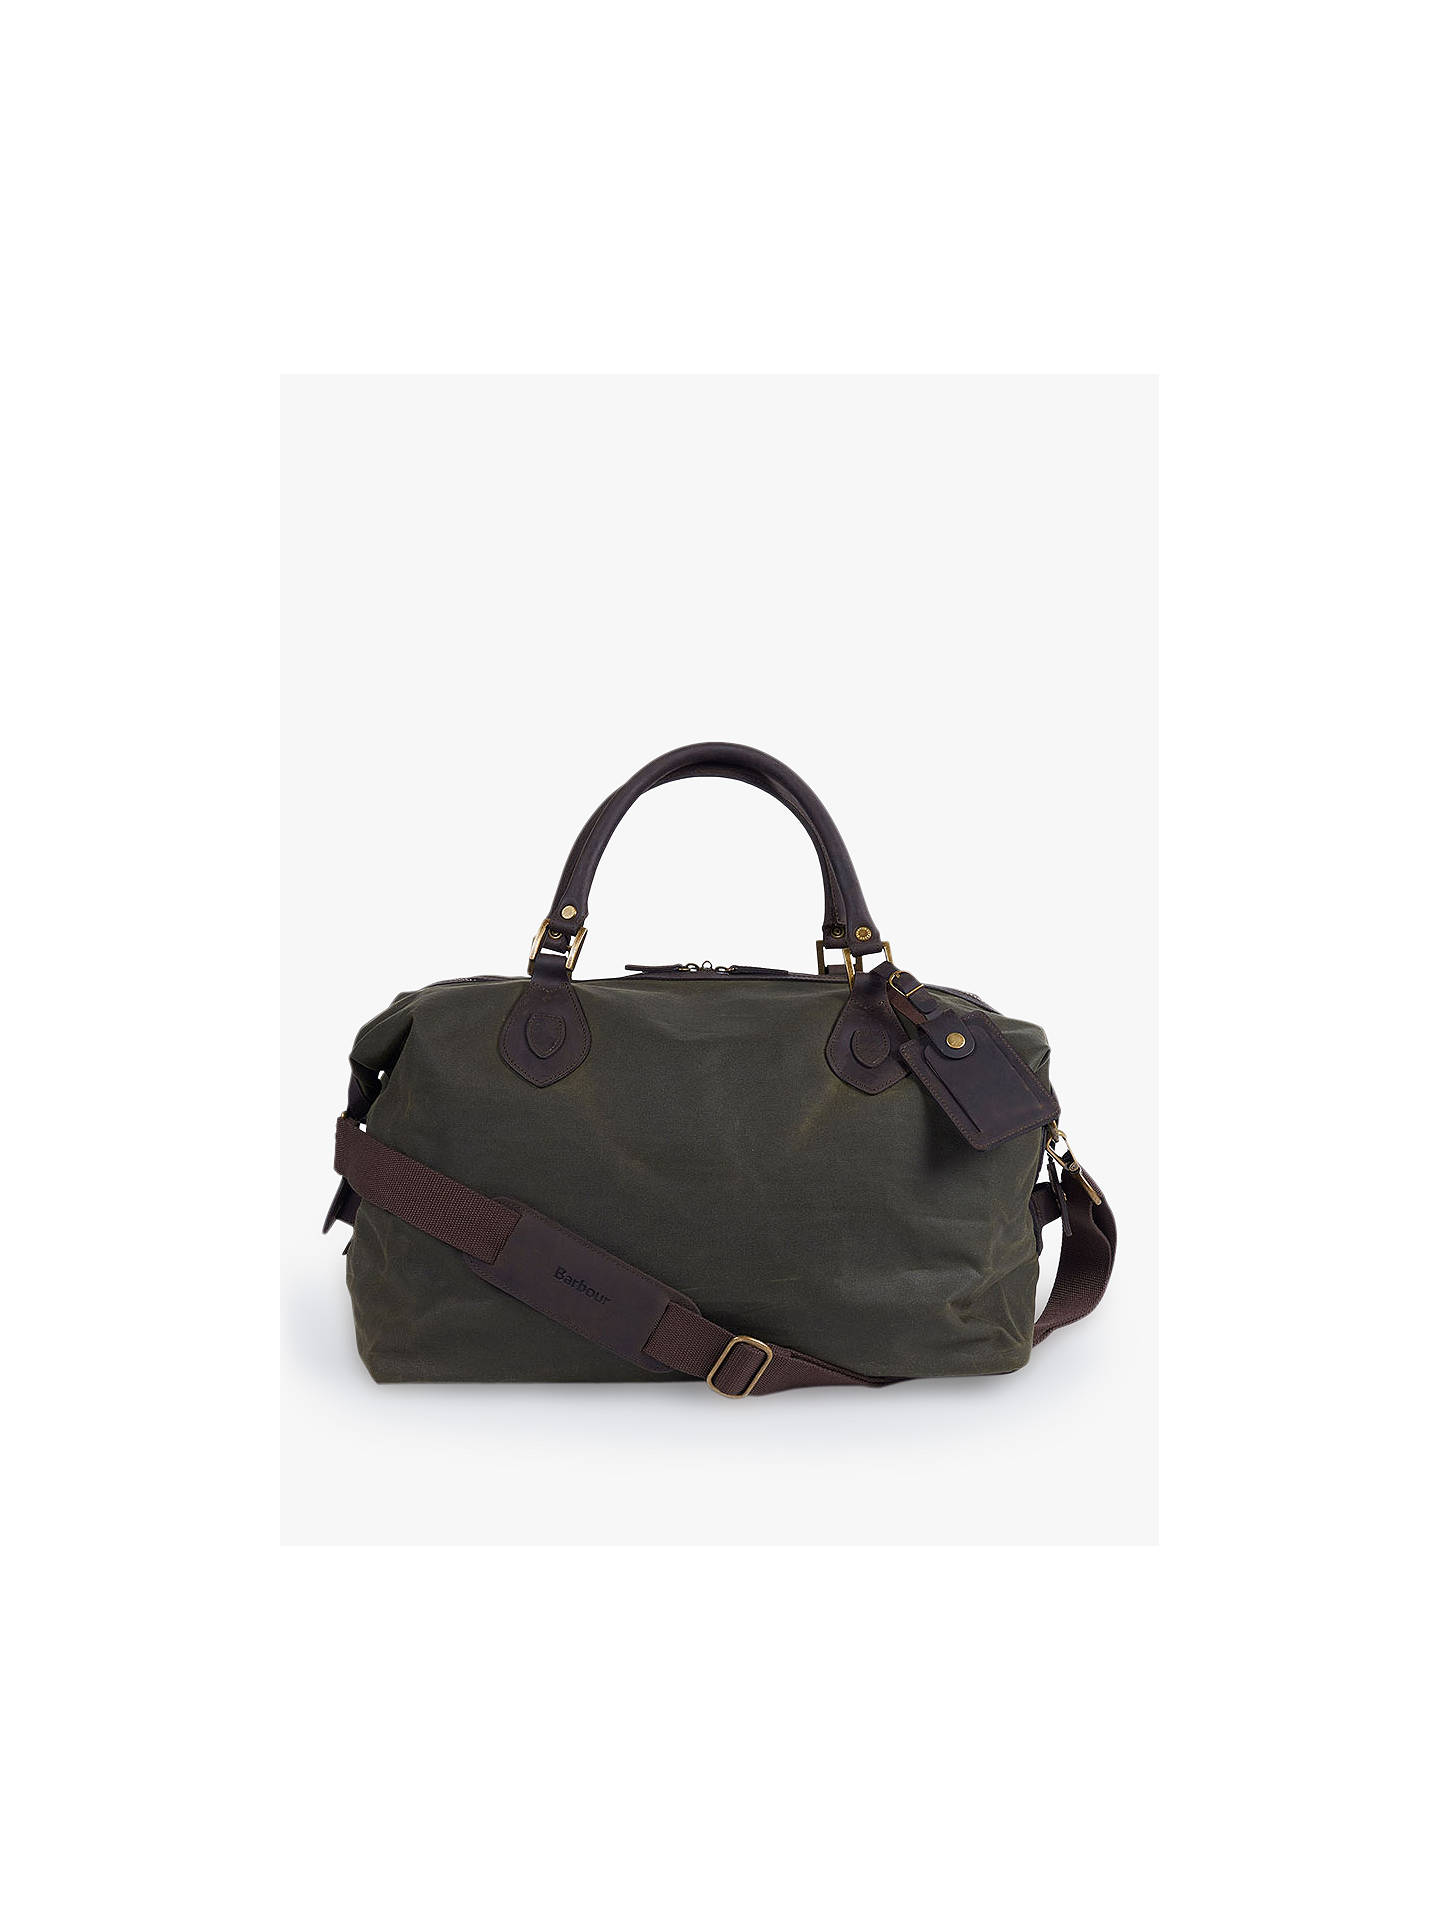 0222bf4b1bd Buy Barbour Wax Cotton Travel Explorer Holdall, Archive Olive Online at  johnlewis.com